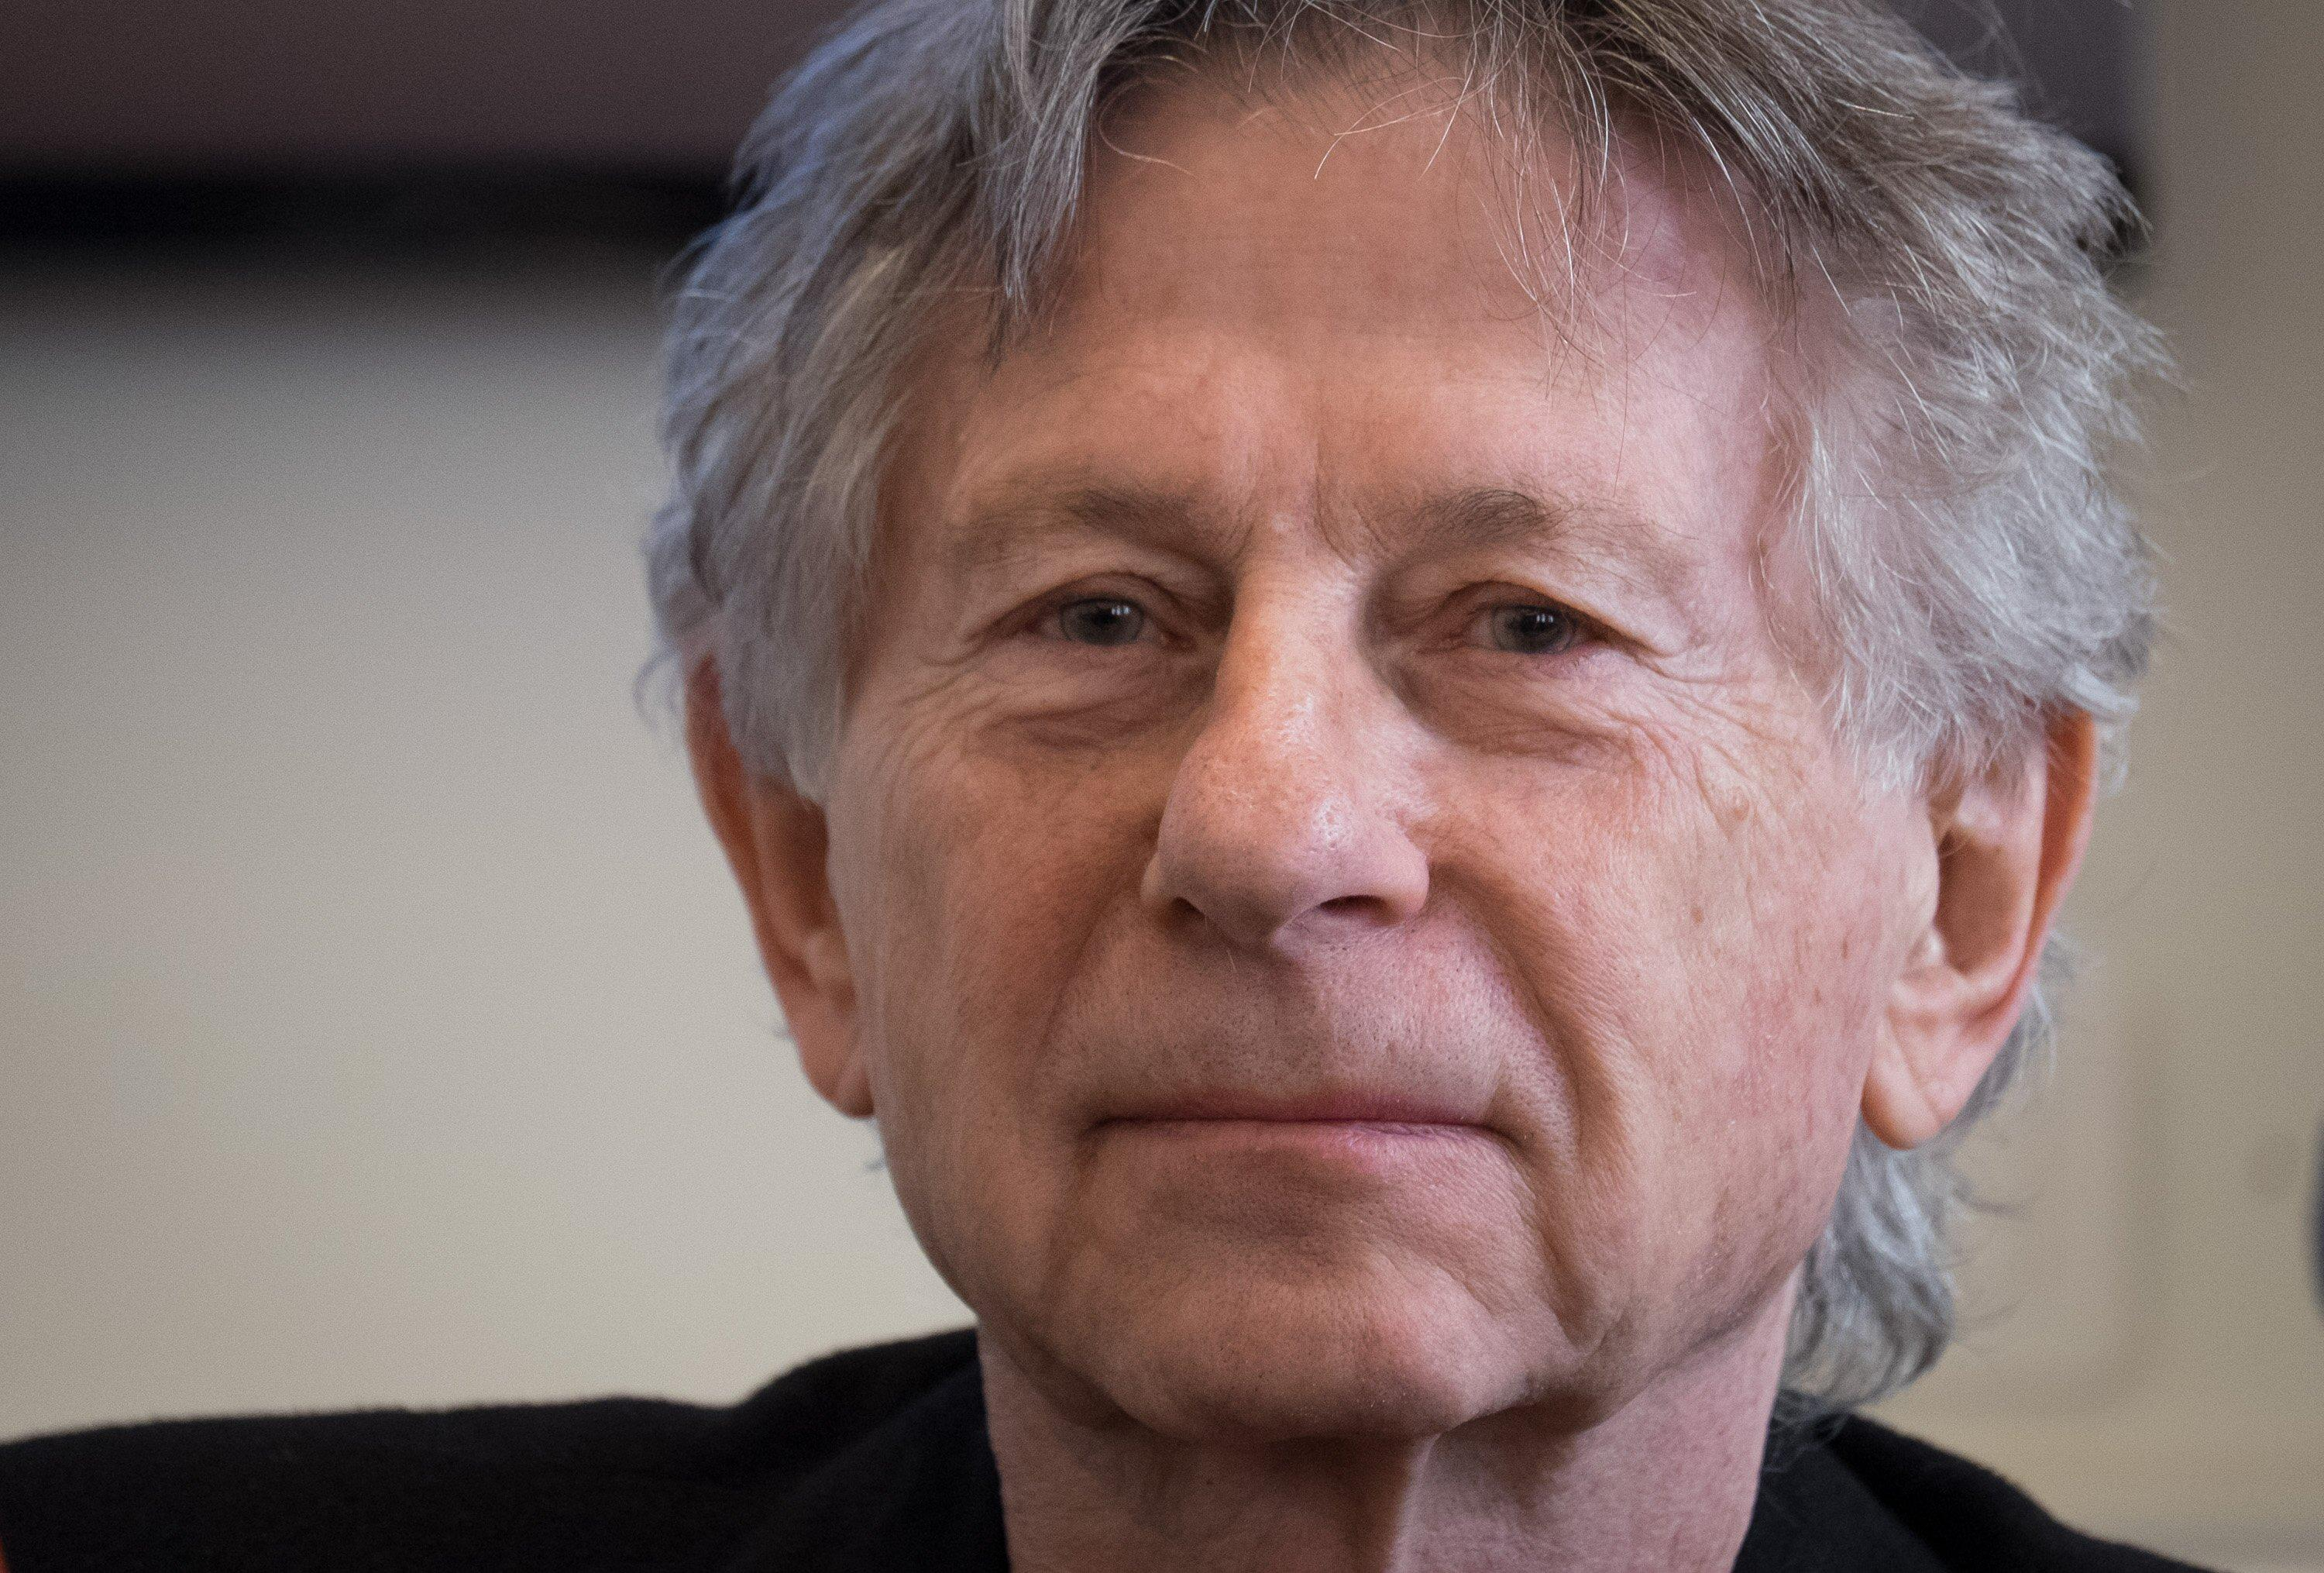 Roman Polanski Will Not Be Extradited To The U.S. From Poland